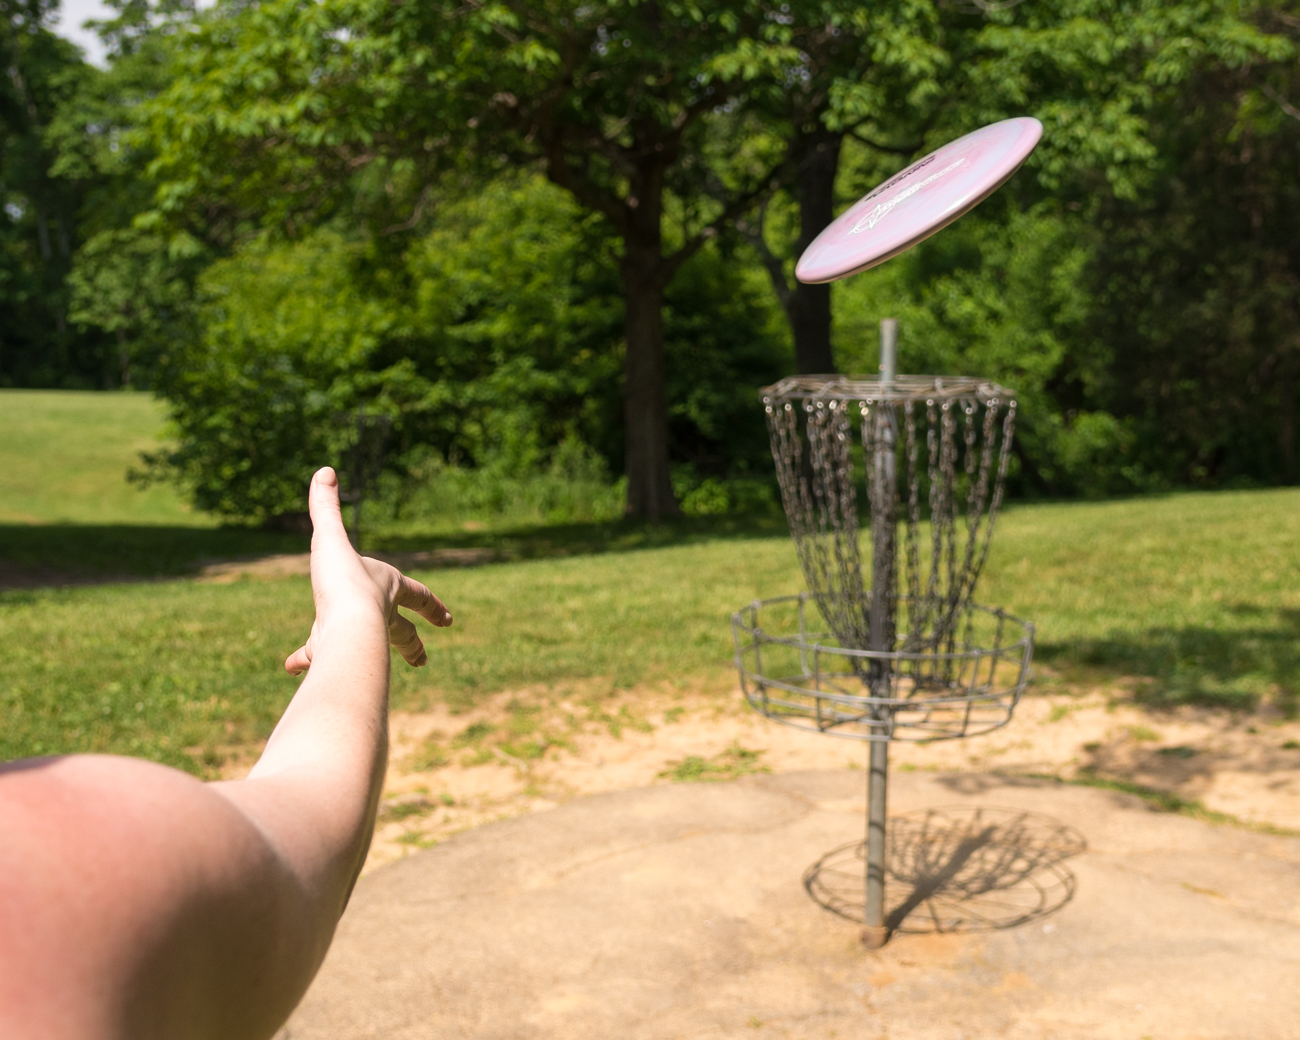 "The object of disc golf is simple: stand on a concrete platform and take as few throws of the disc as possible to land in the metal basket at the end of the ""hole."" The rules are similar(ish) to traditional golf, albeit with a frisbee component instead of a golf ball and club. / Image: Phil Armstrong, Cincinnati Refined // Published: 6.8.17"